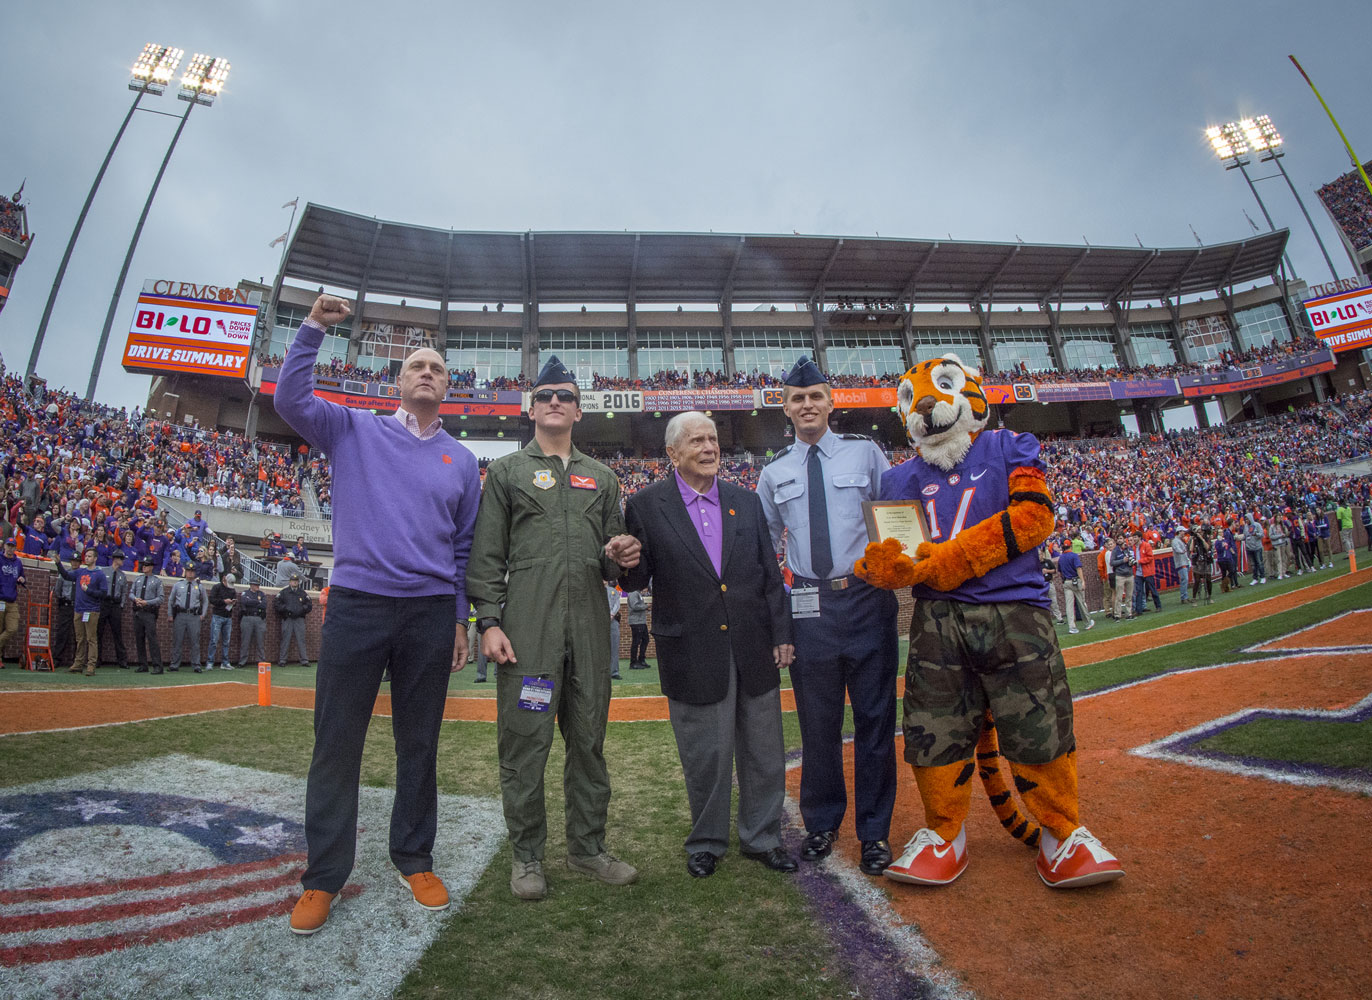 Retired U.S. Army Col. Ben Skardon, 100 (in dark jacket), is escorted onto the field of Memorial Stadium by Clemson president Jim Clements (left), the Clemson Tiger (right), and two Air Force ROTC cadets to be recognized as the Hero of the Game during the 2017 Military Appreciation Game.